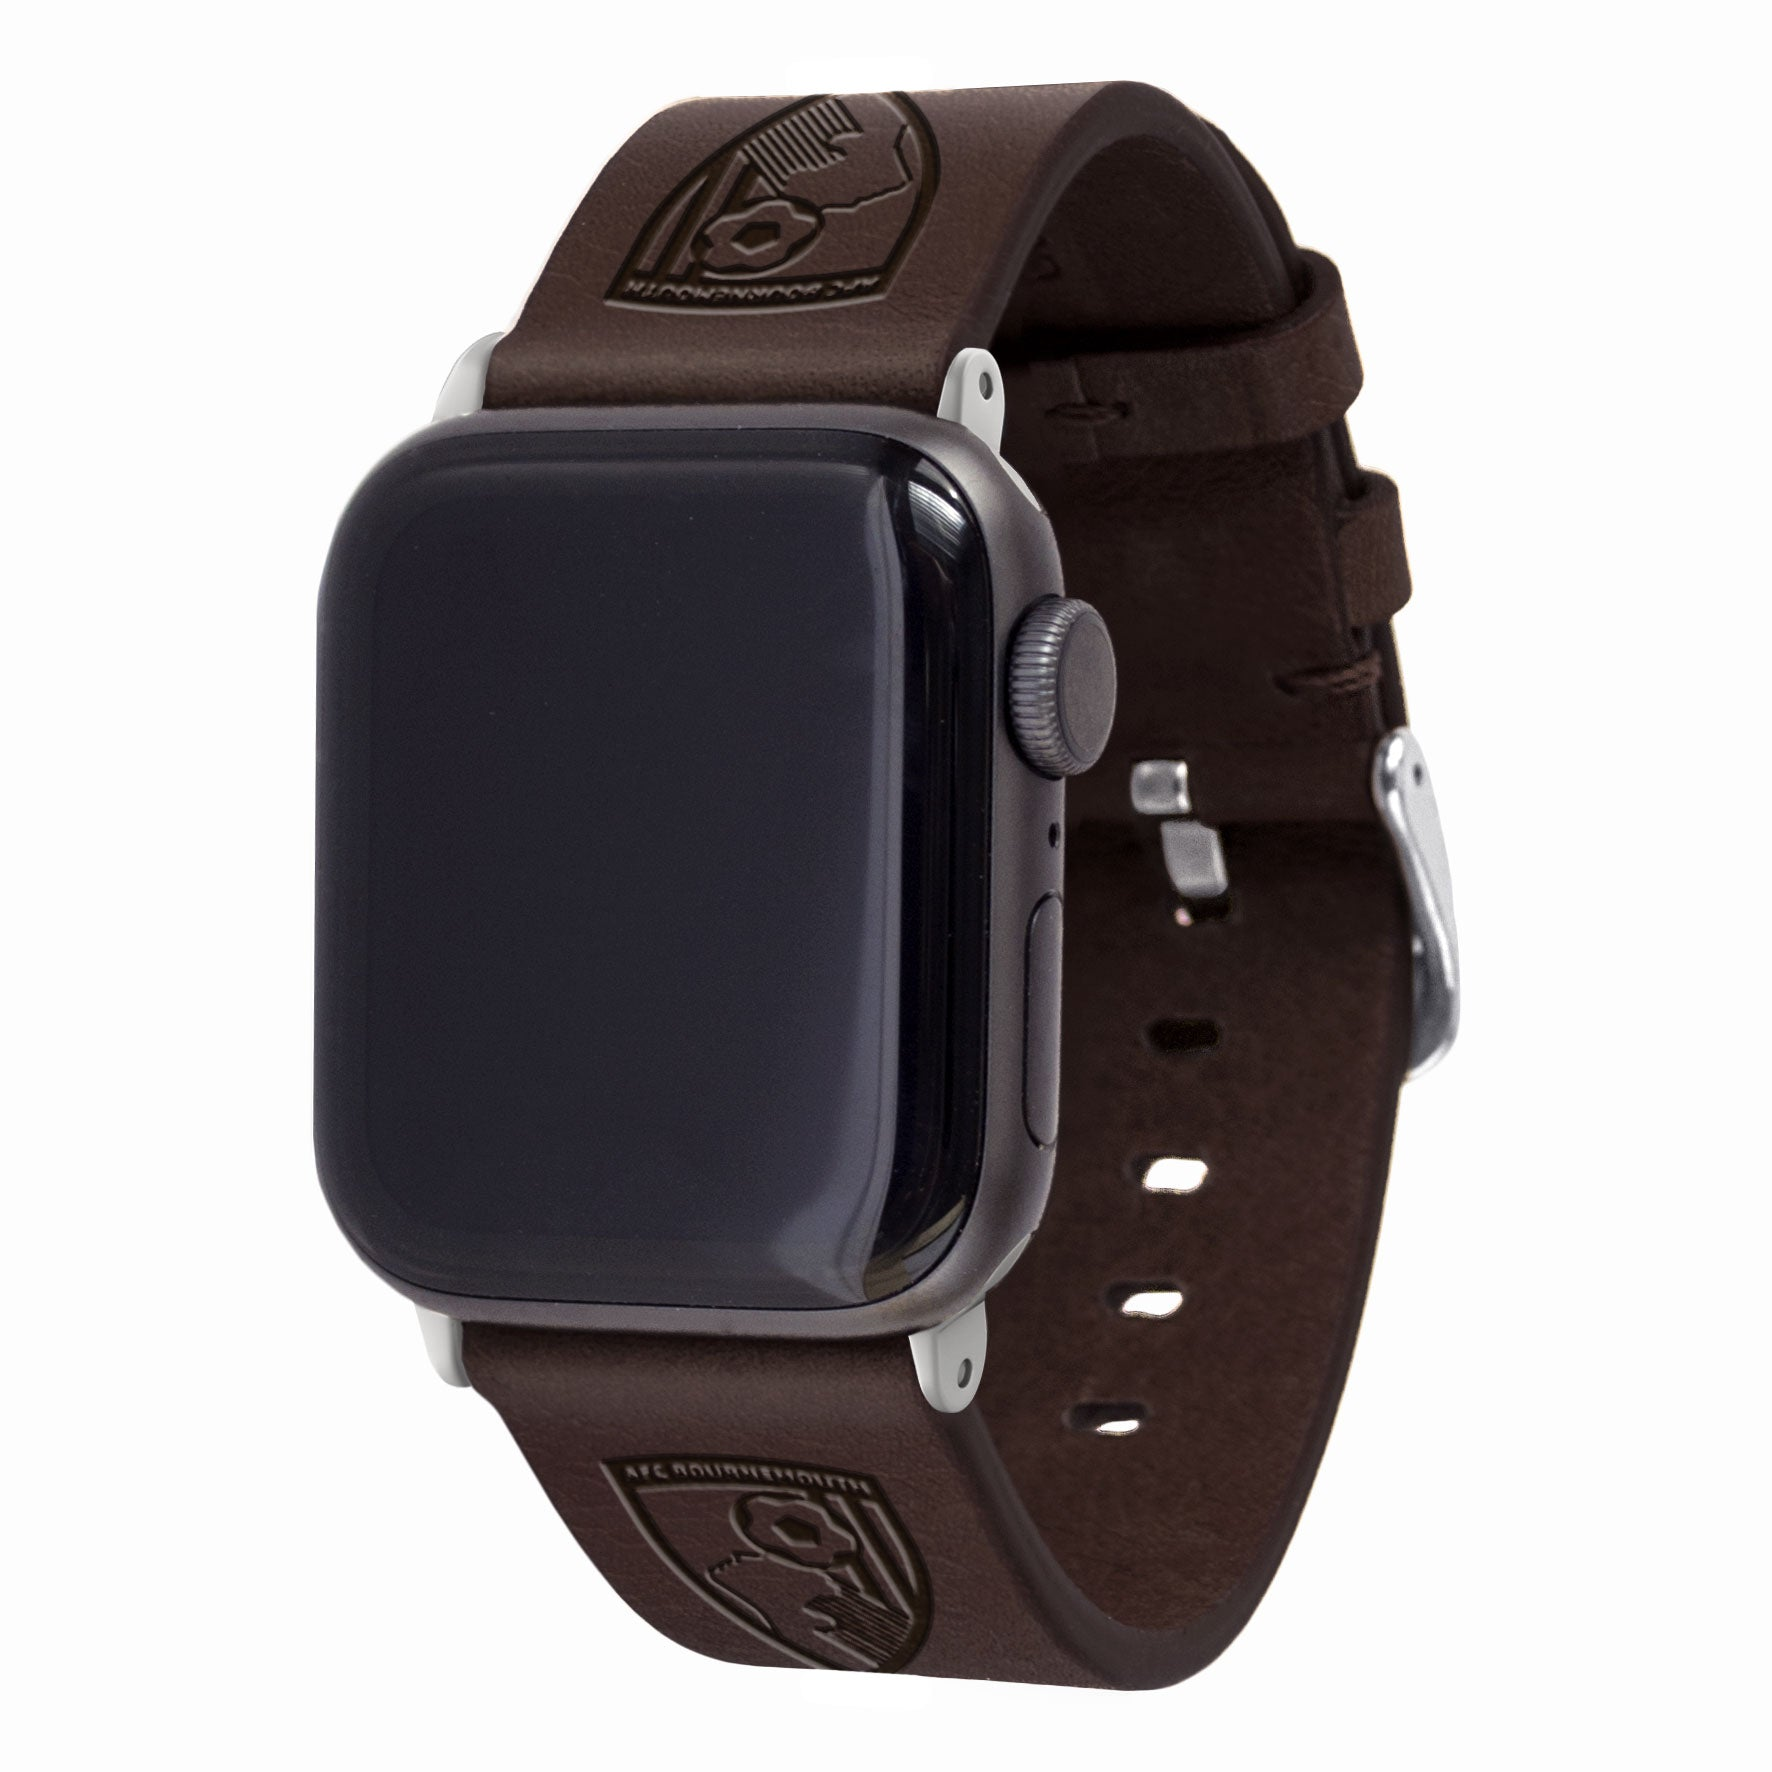 AFC Bournemouth Leather Apple Watch Band - Affinity Bands